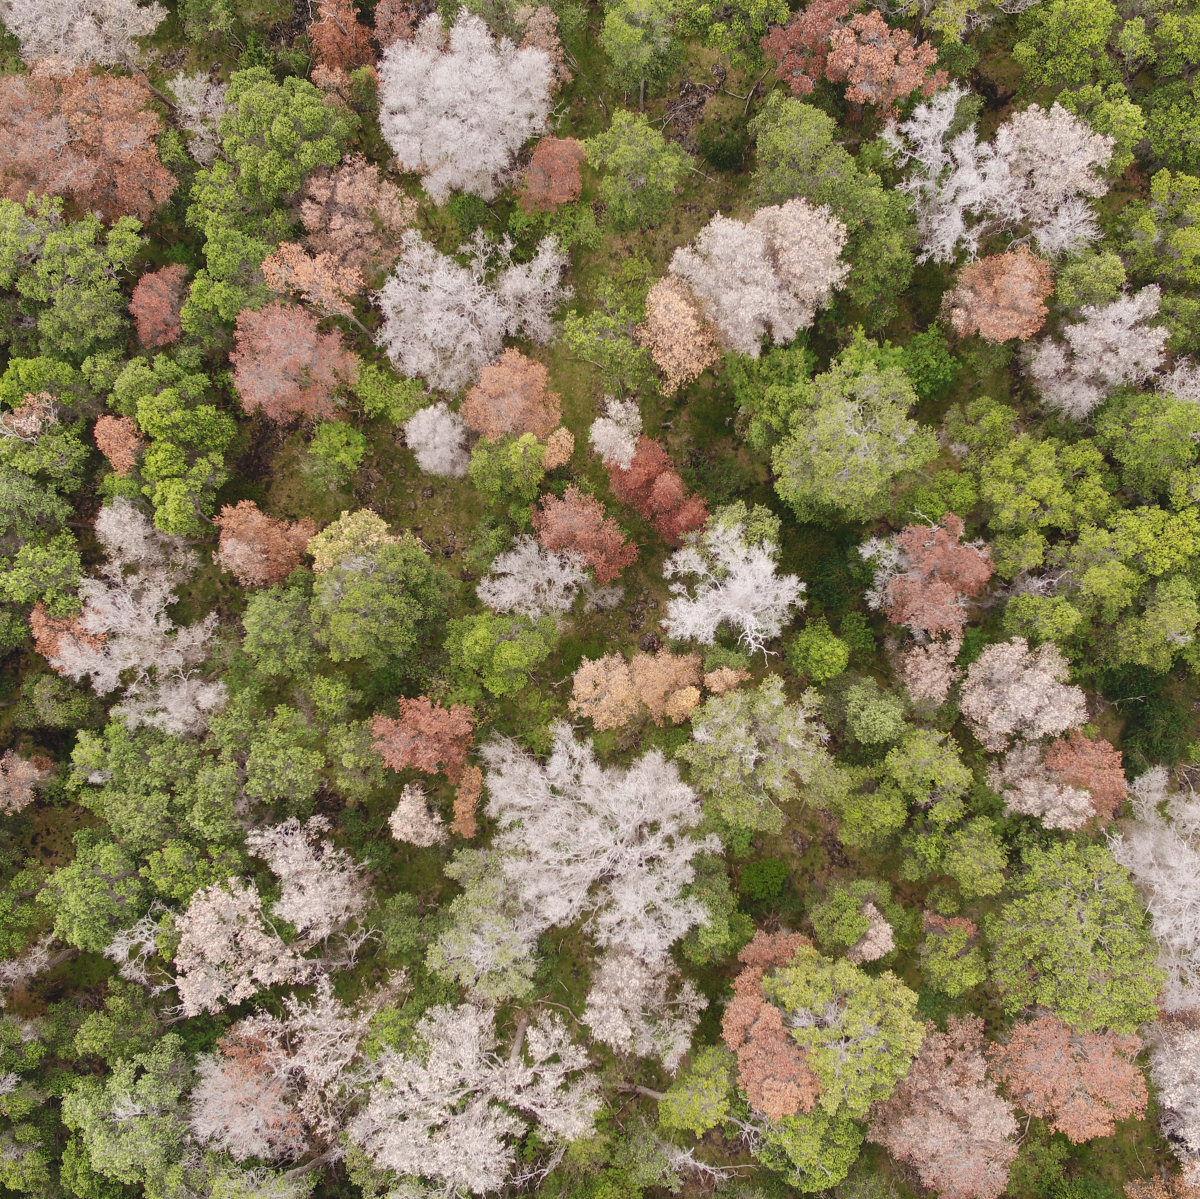 Scientists Are Using Drones to Combat a Fungus Wiping Out Hawaii's Sacred Trees